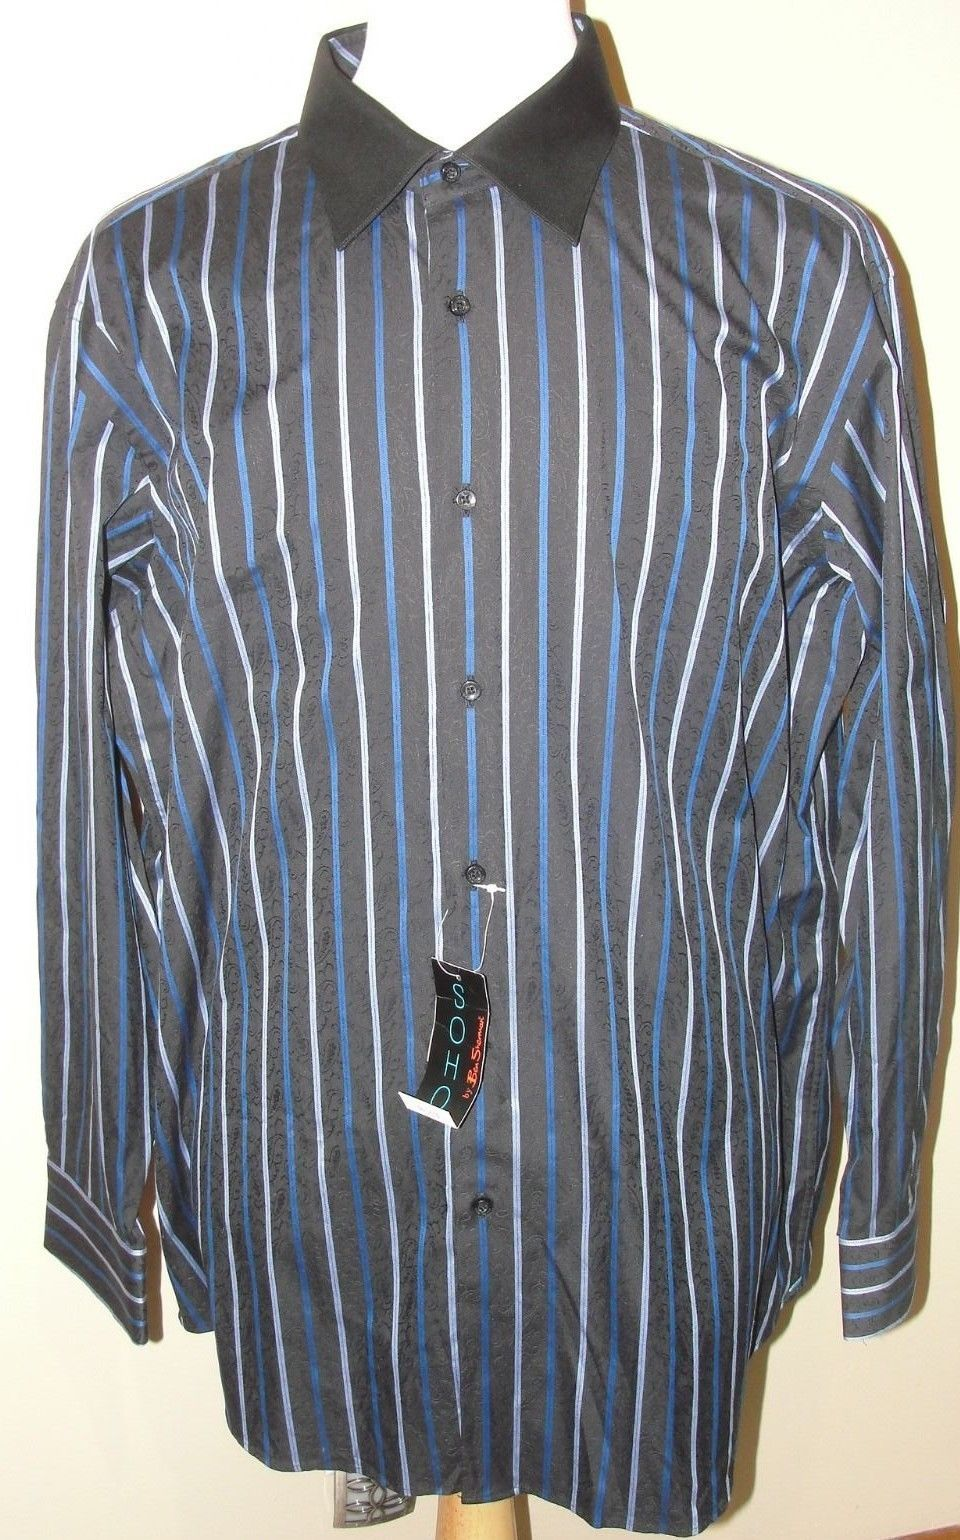 nwt soho by ben sherman designer mens dress shirt size 18